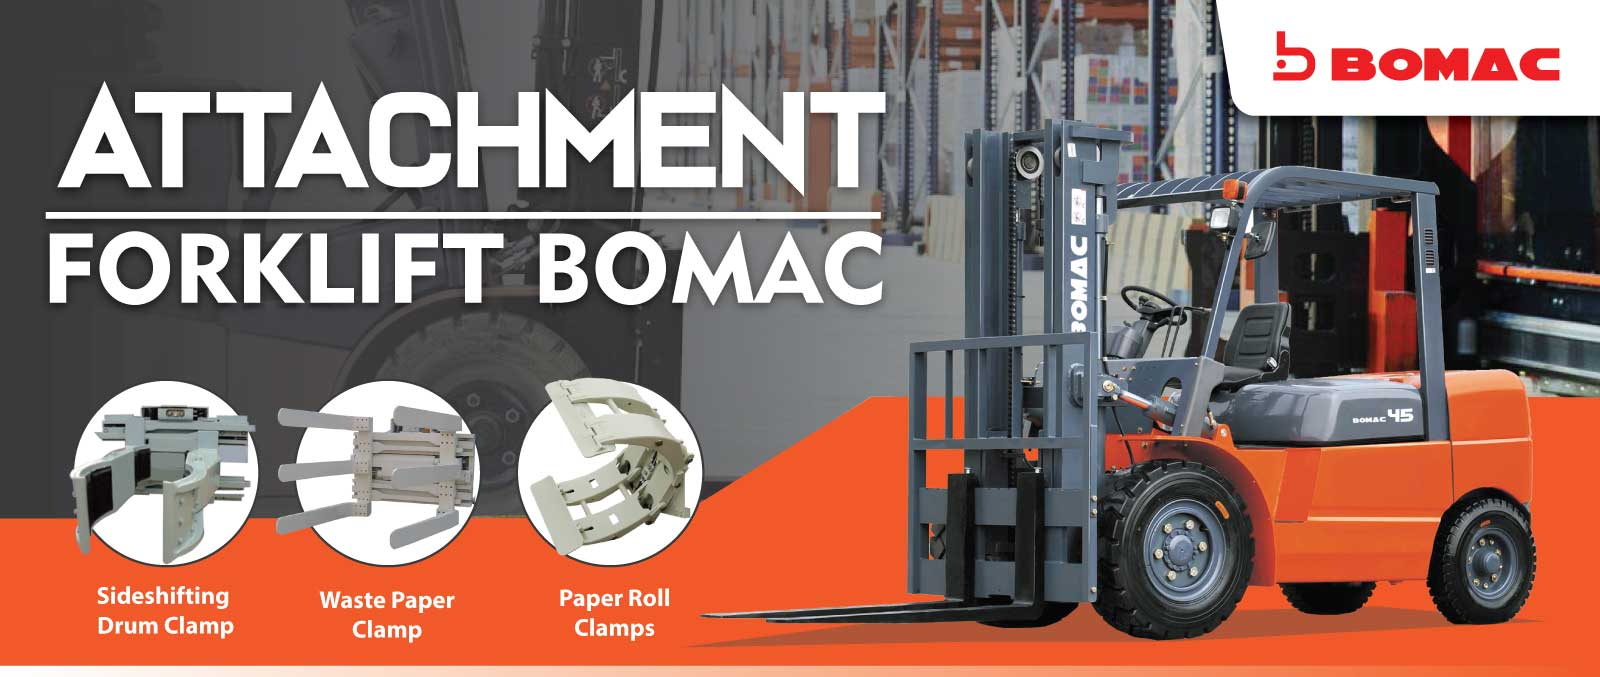 Banner Attachment Forklift Bomac